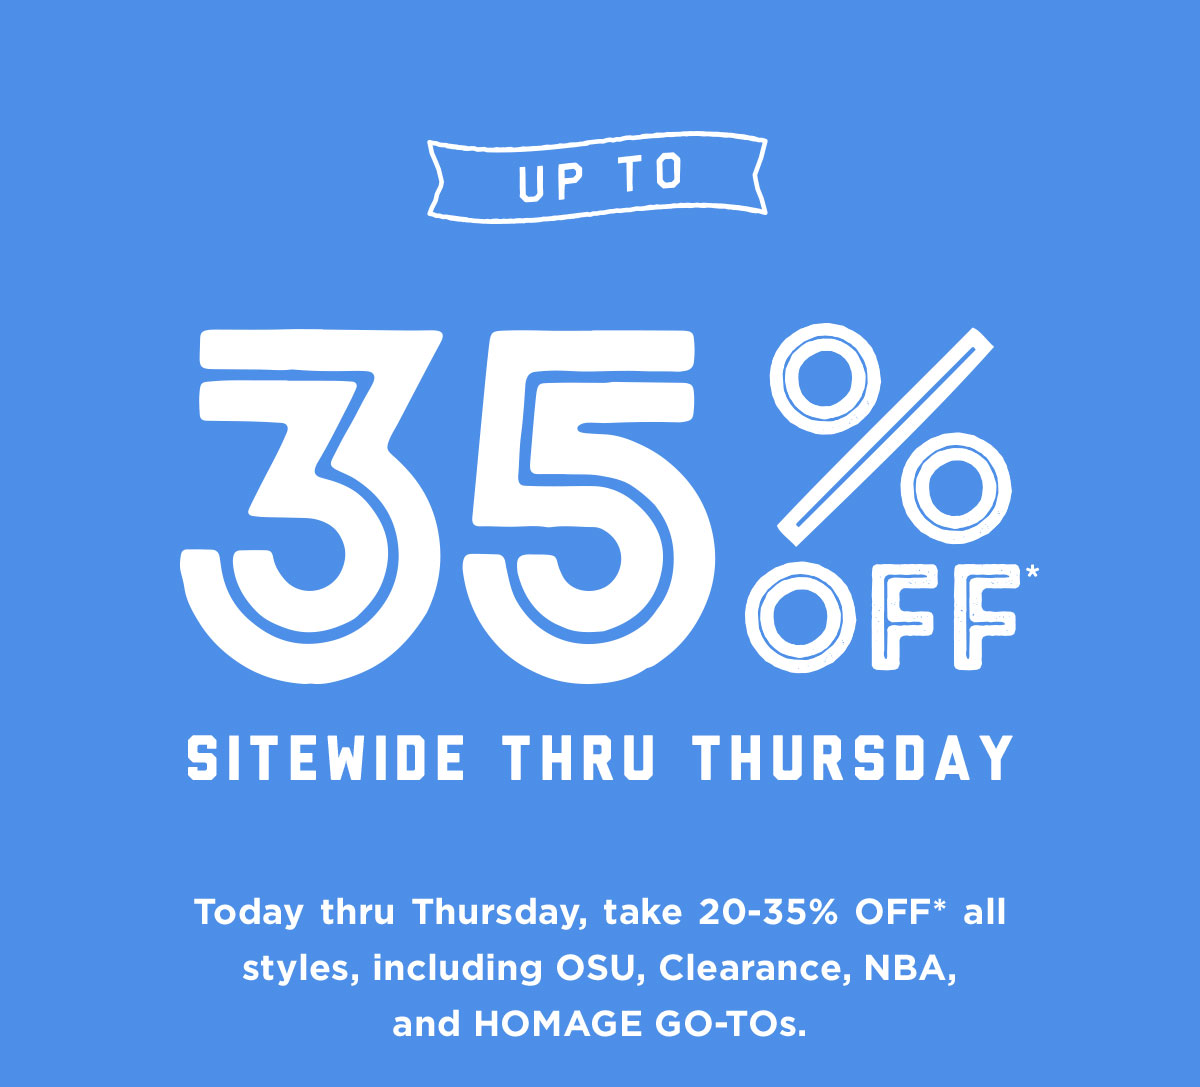 Up to 35% off* sitewide thru Thursday! Today thru Thursday, take 20-35% off* all styles, including OSU, Clearance, NBA, and HOMAGE Go-Tos.